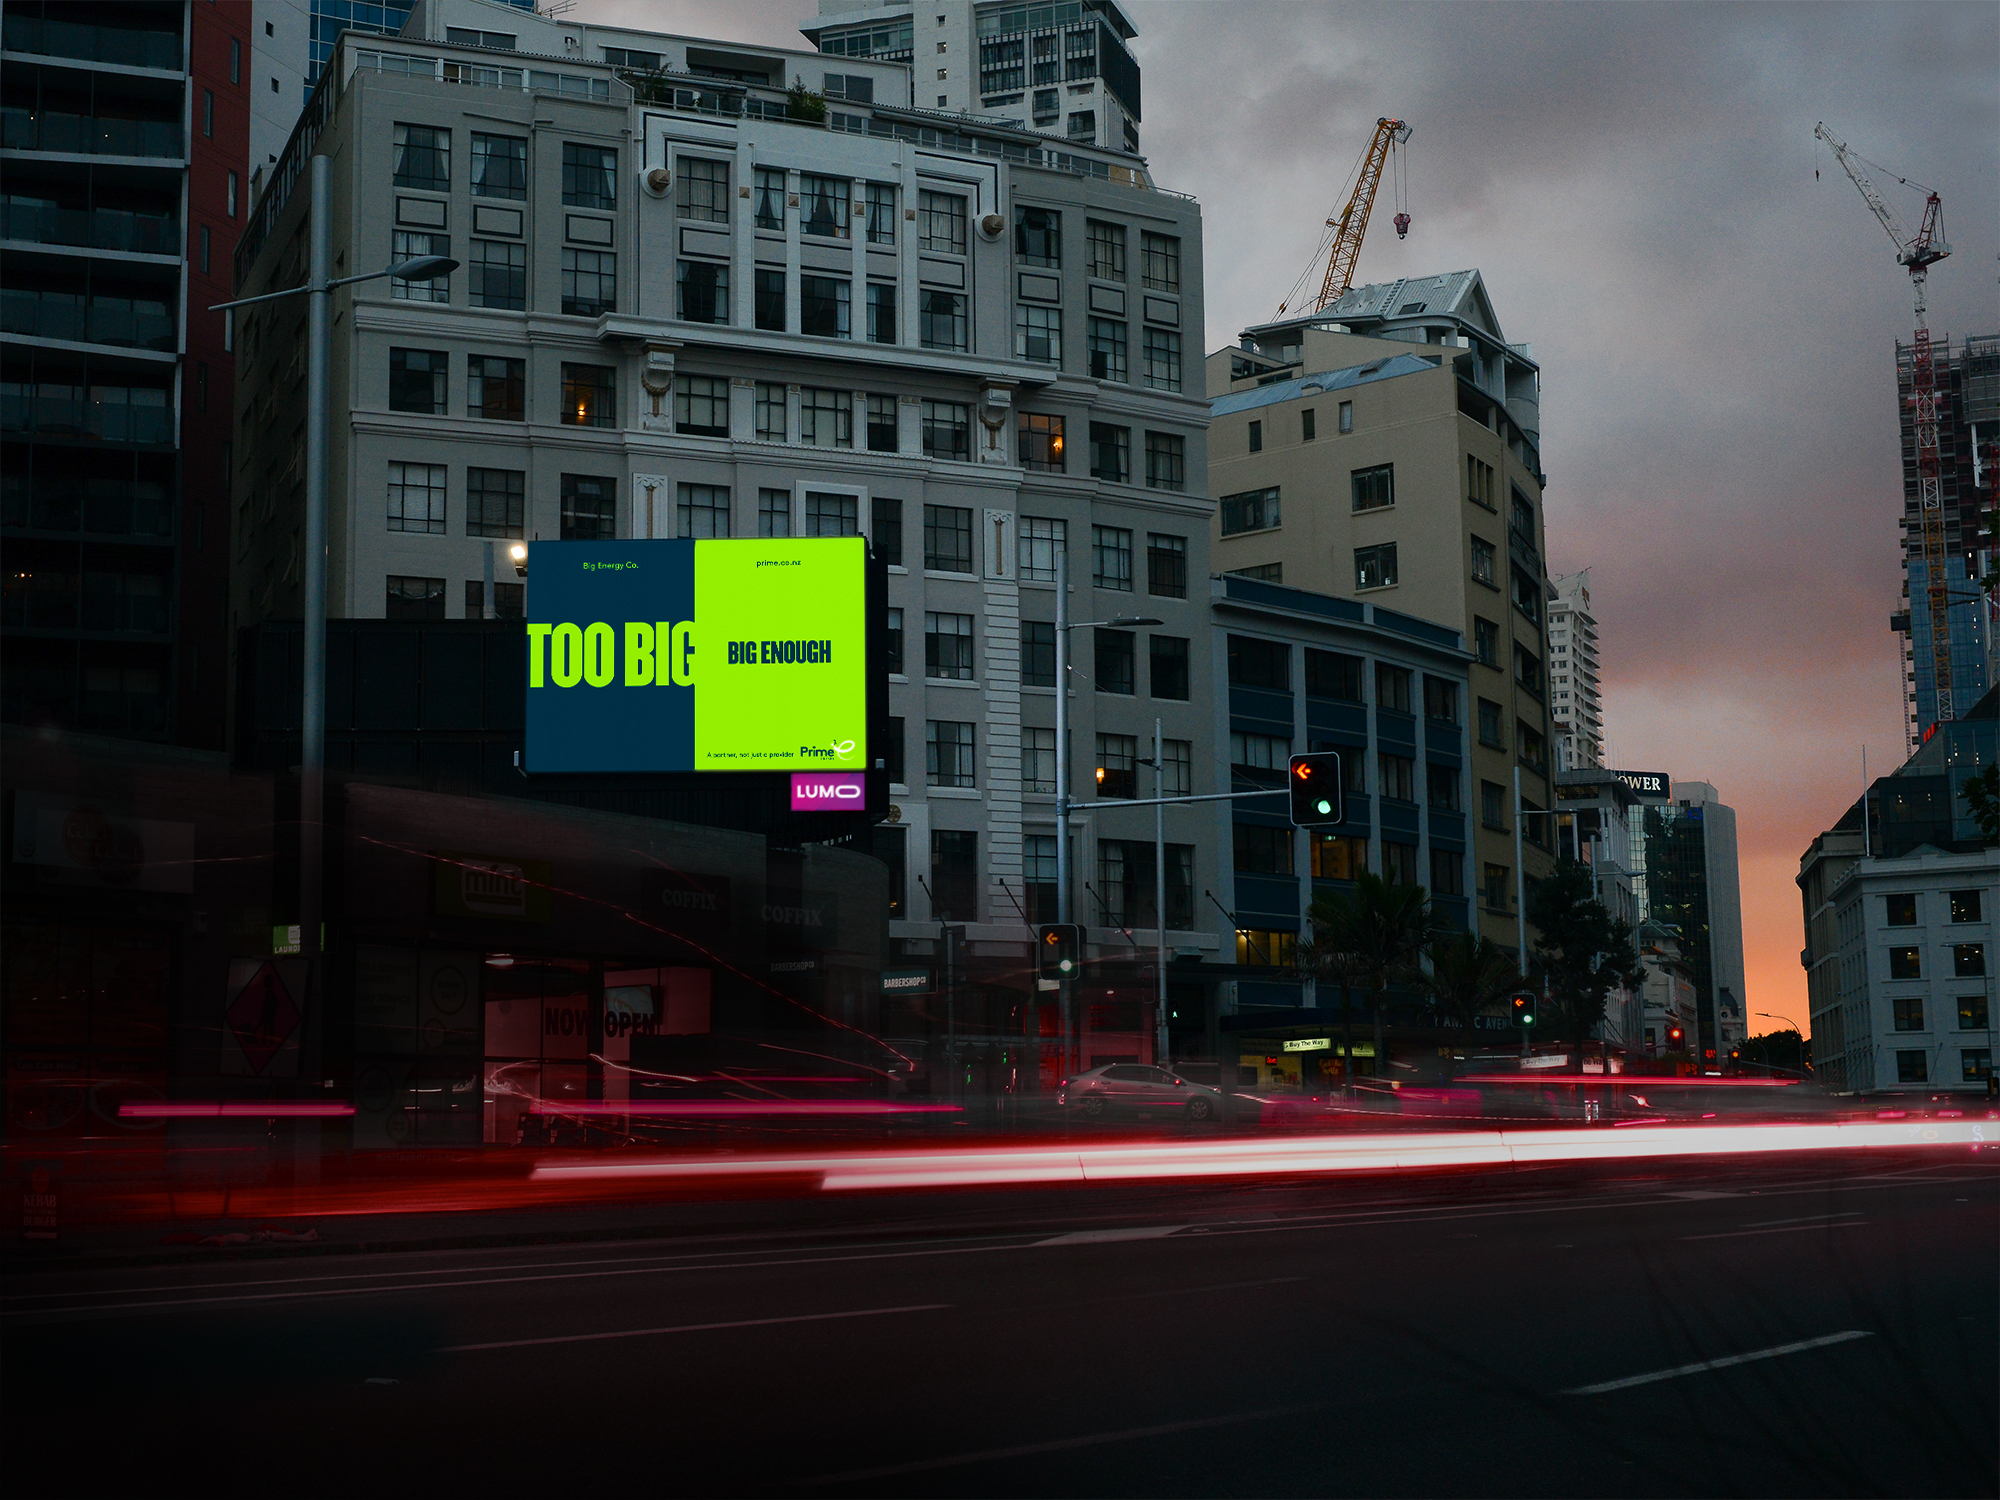 Prime Energy tackles the big corporations head on in newly launched outdoor campaign via Hello